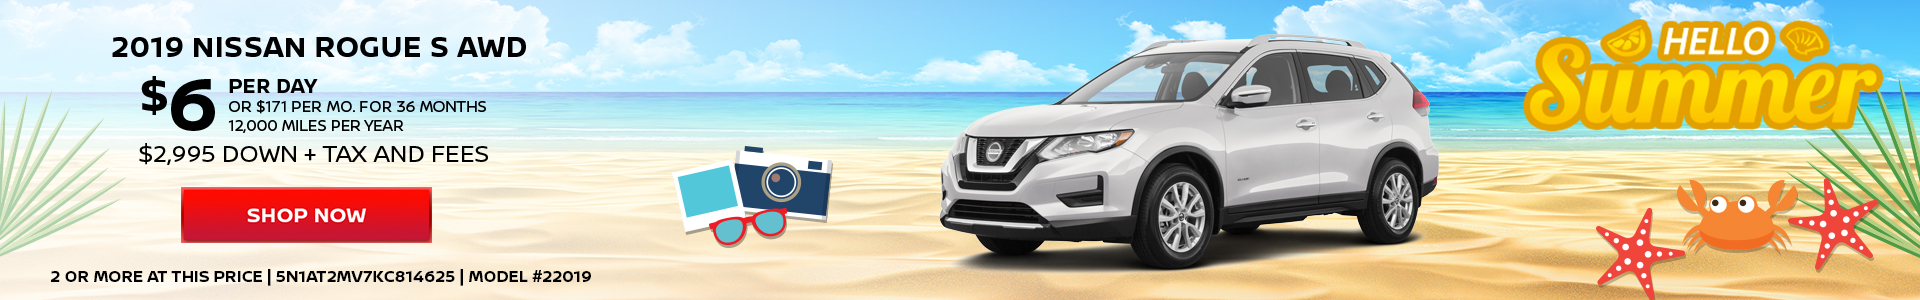 Nissan Rogue $6 Day Lease